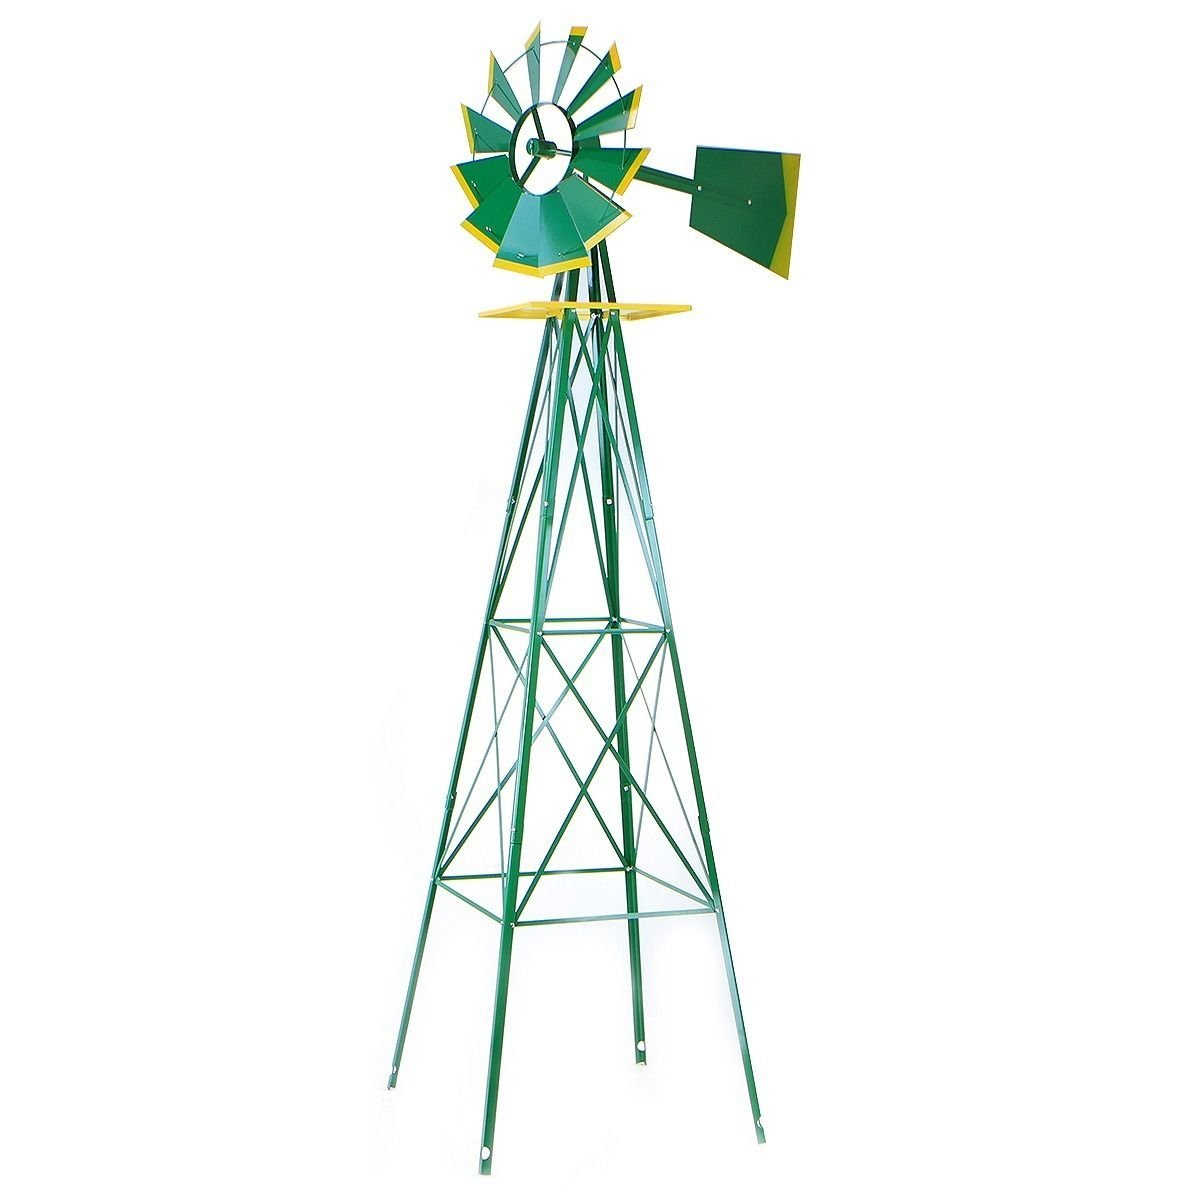 8ft Green Metal Windmill Yard Garden Wind Mill Weather Rust Resistant Hd Steel, This... by